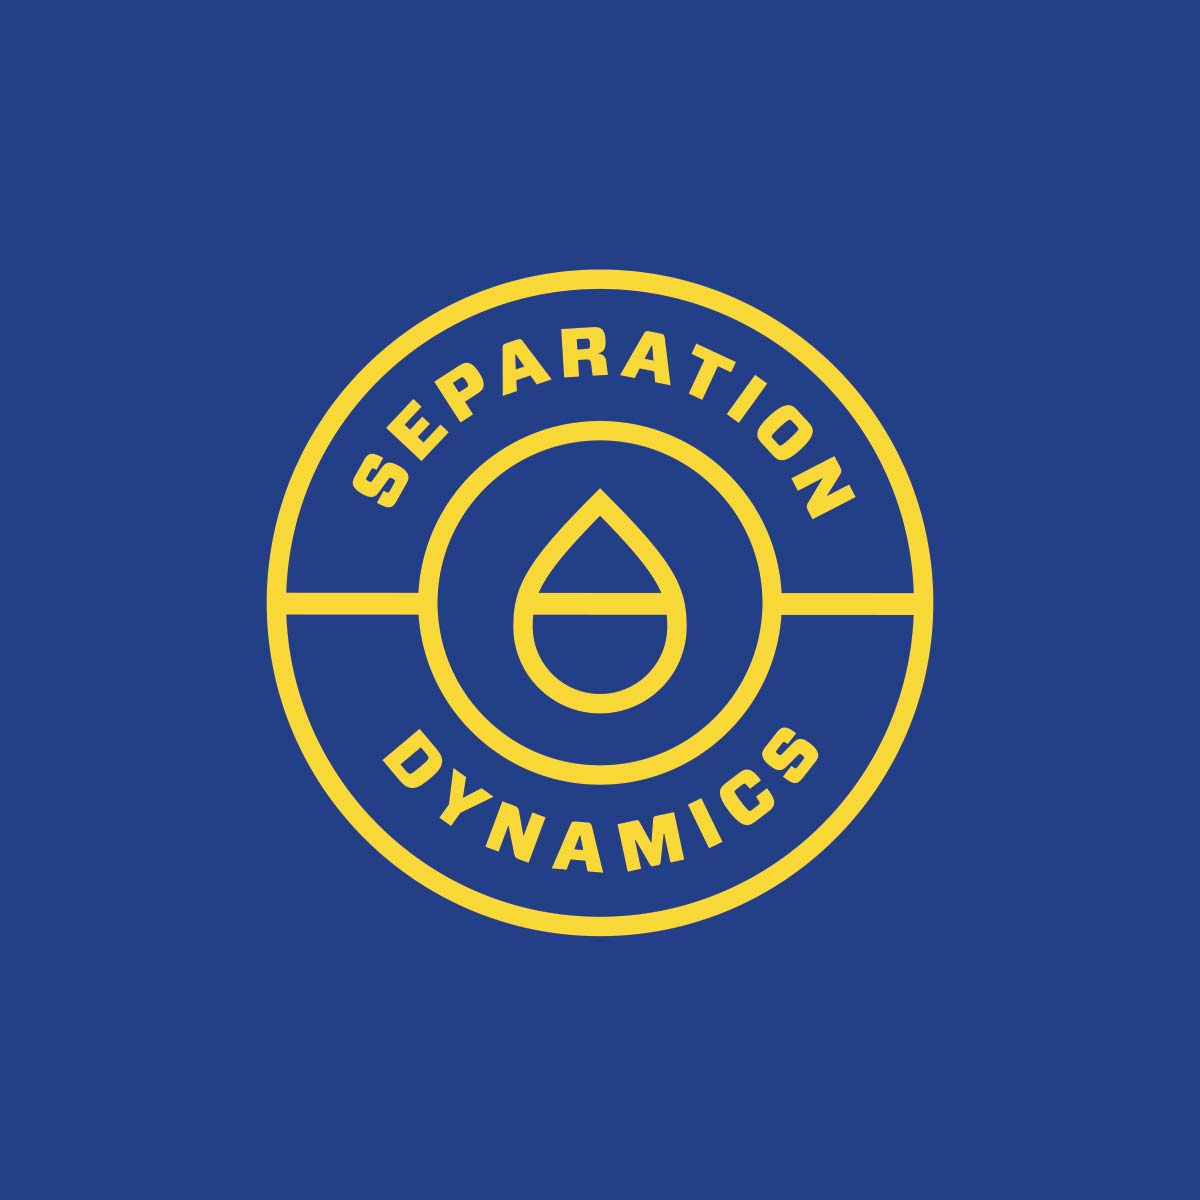 Separation Dynamics logo clear on blue background